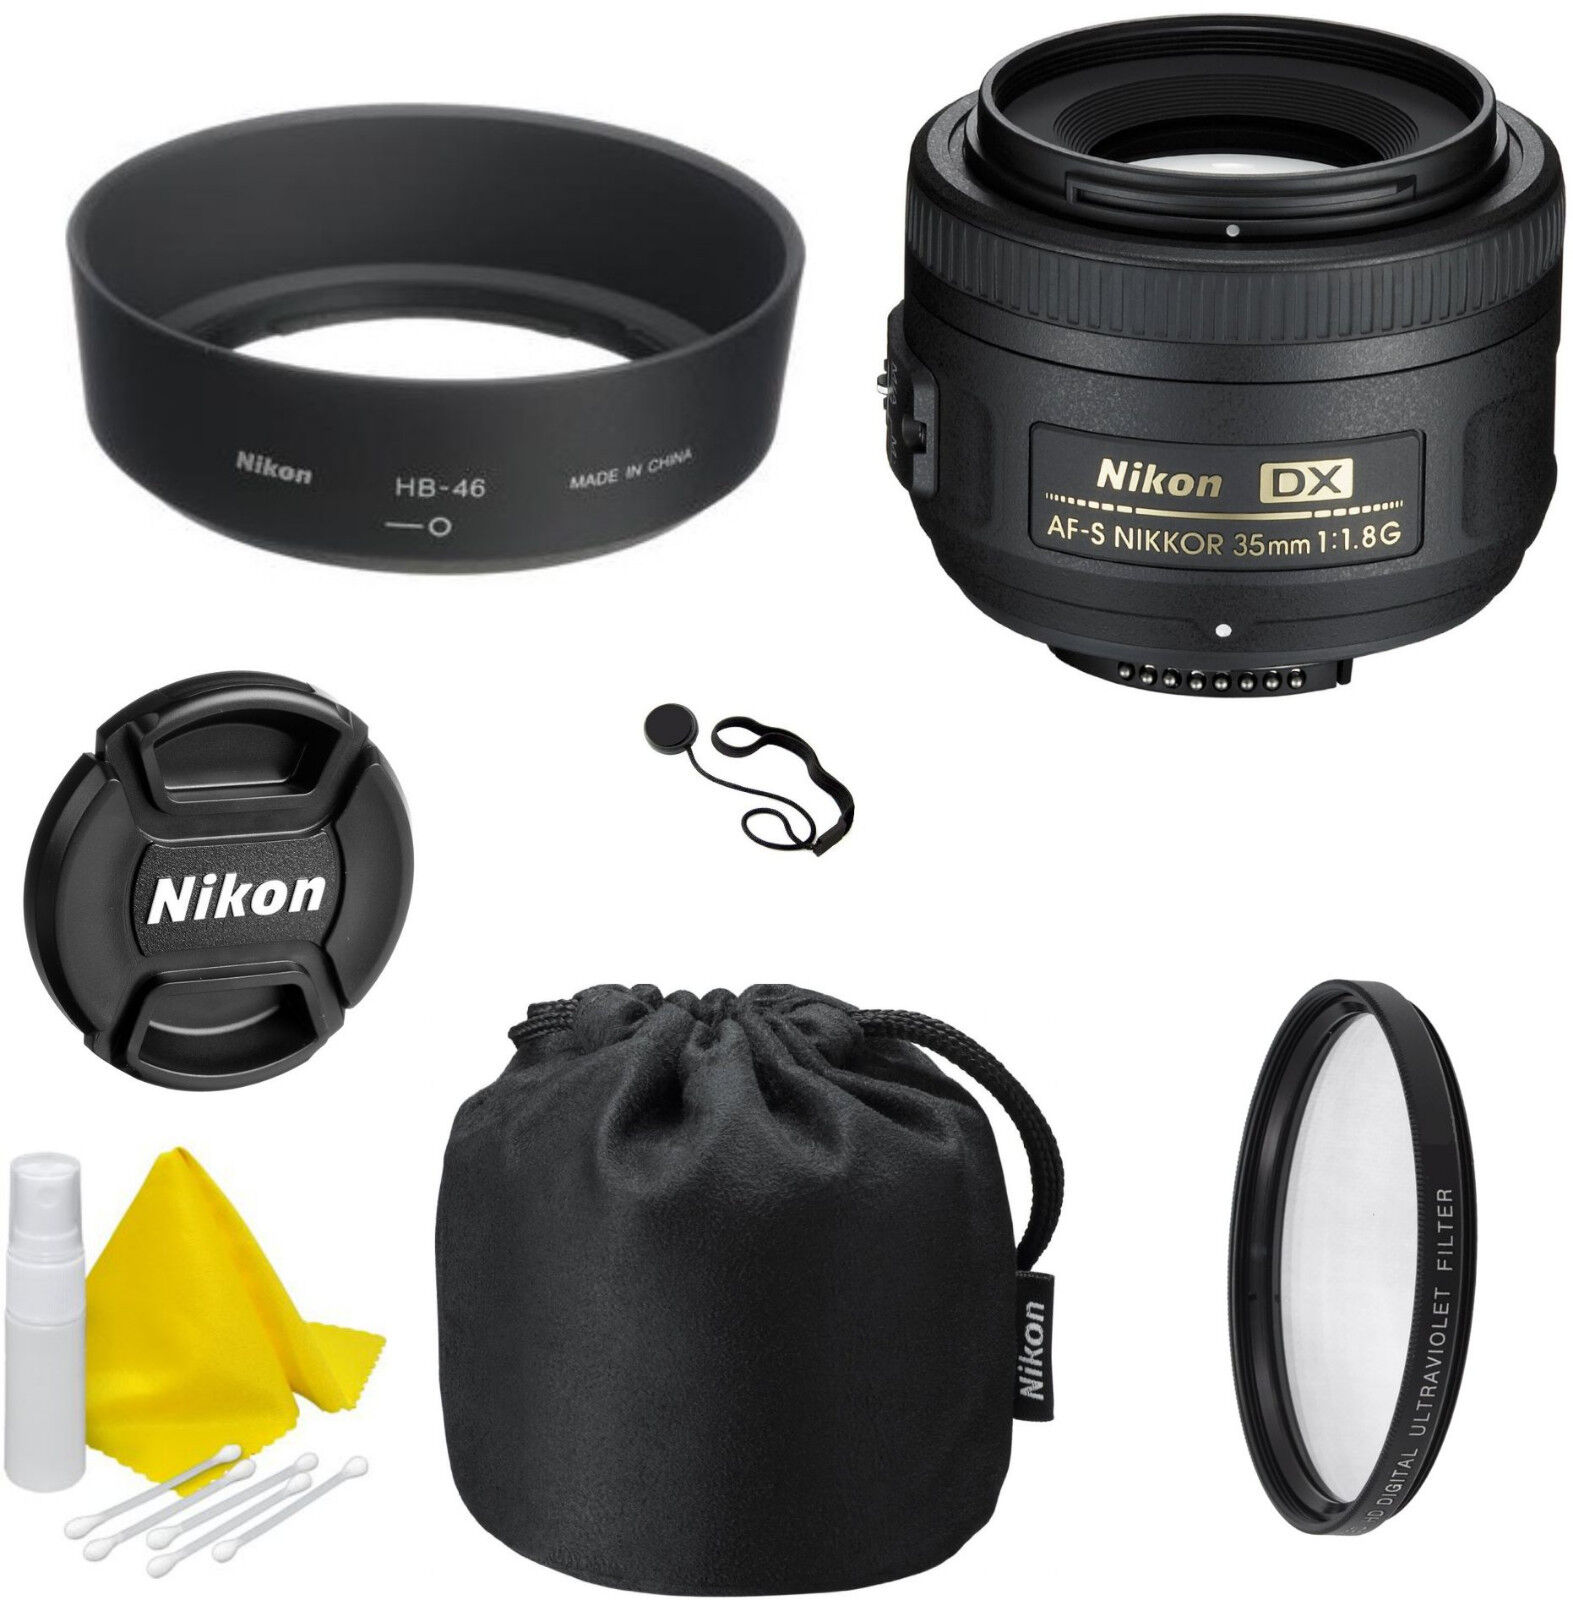 Nikon AF-S DX NIKKOR 35mm f/1.8G Lens - CellTime Kit